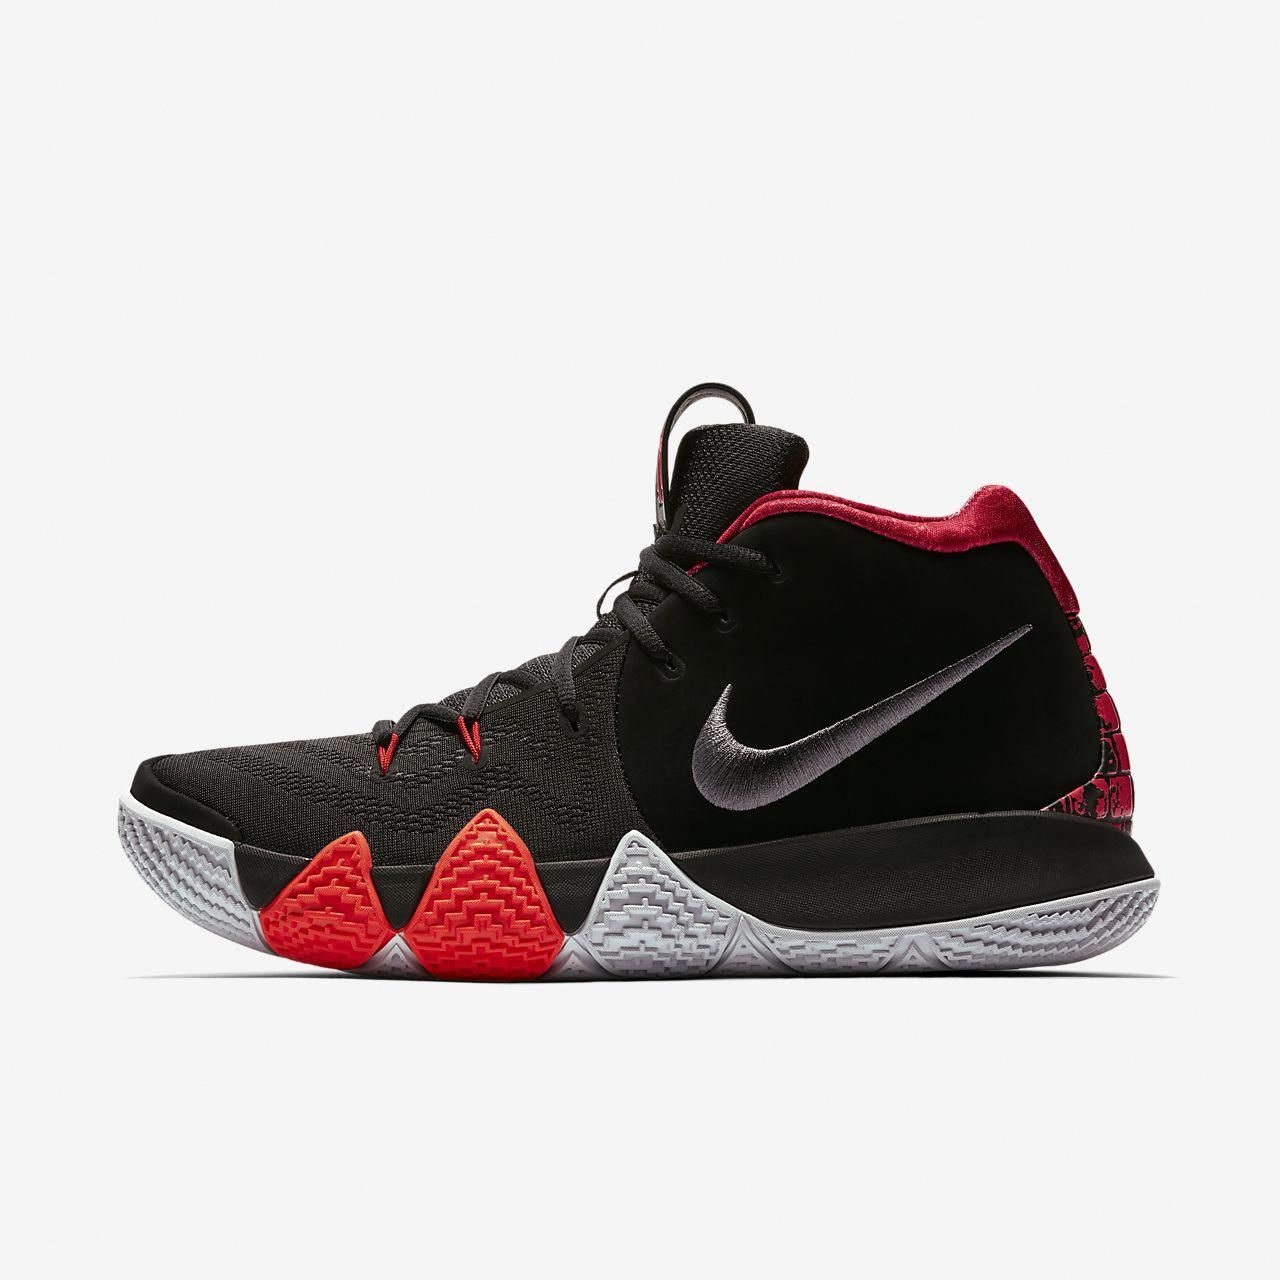 best service 86f1f dcbcf Nike Kyrie 4 Black White 943806-002 Release Date + Photos